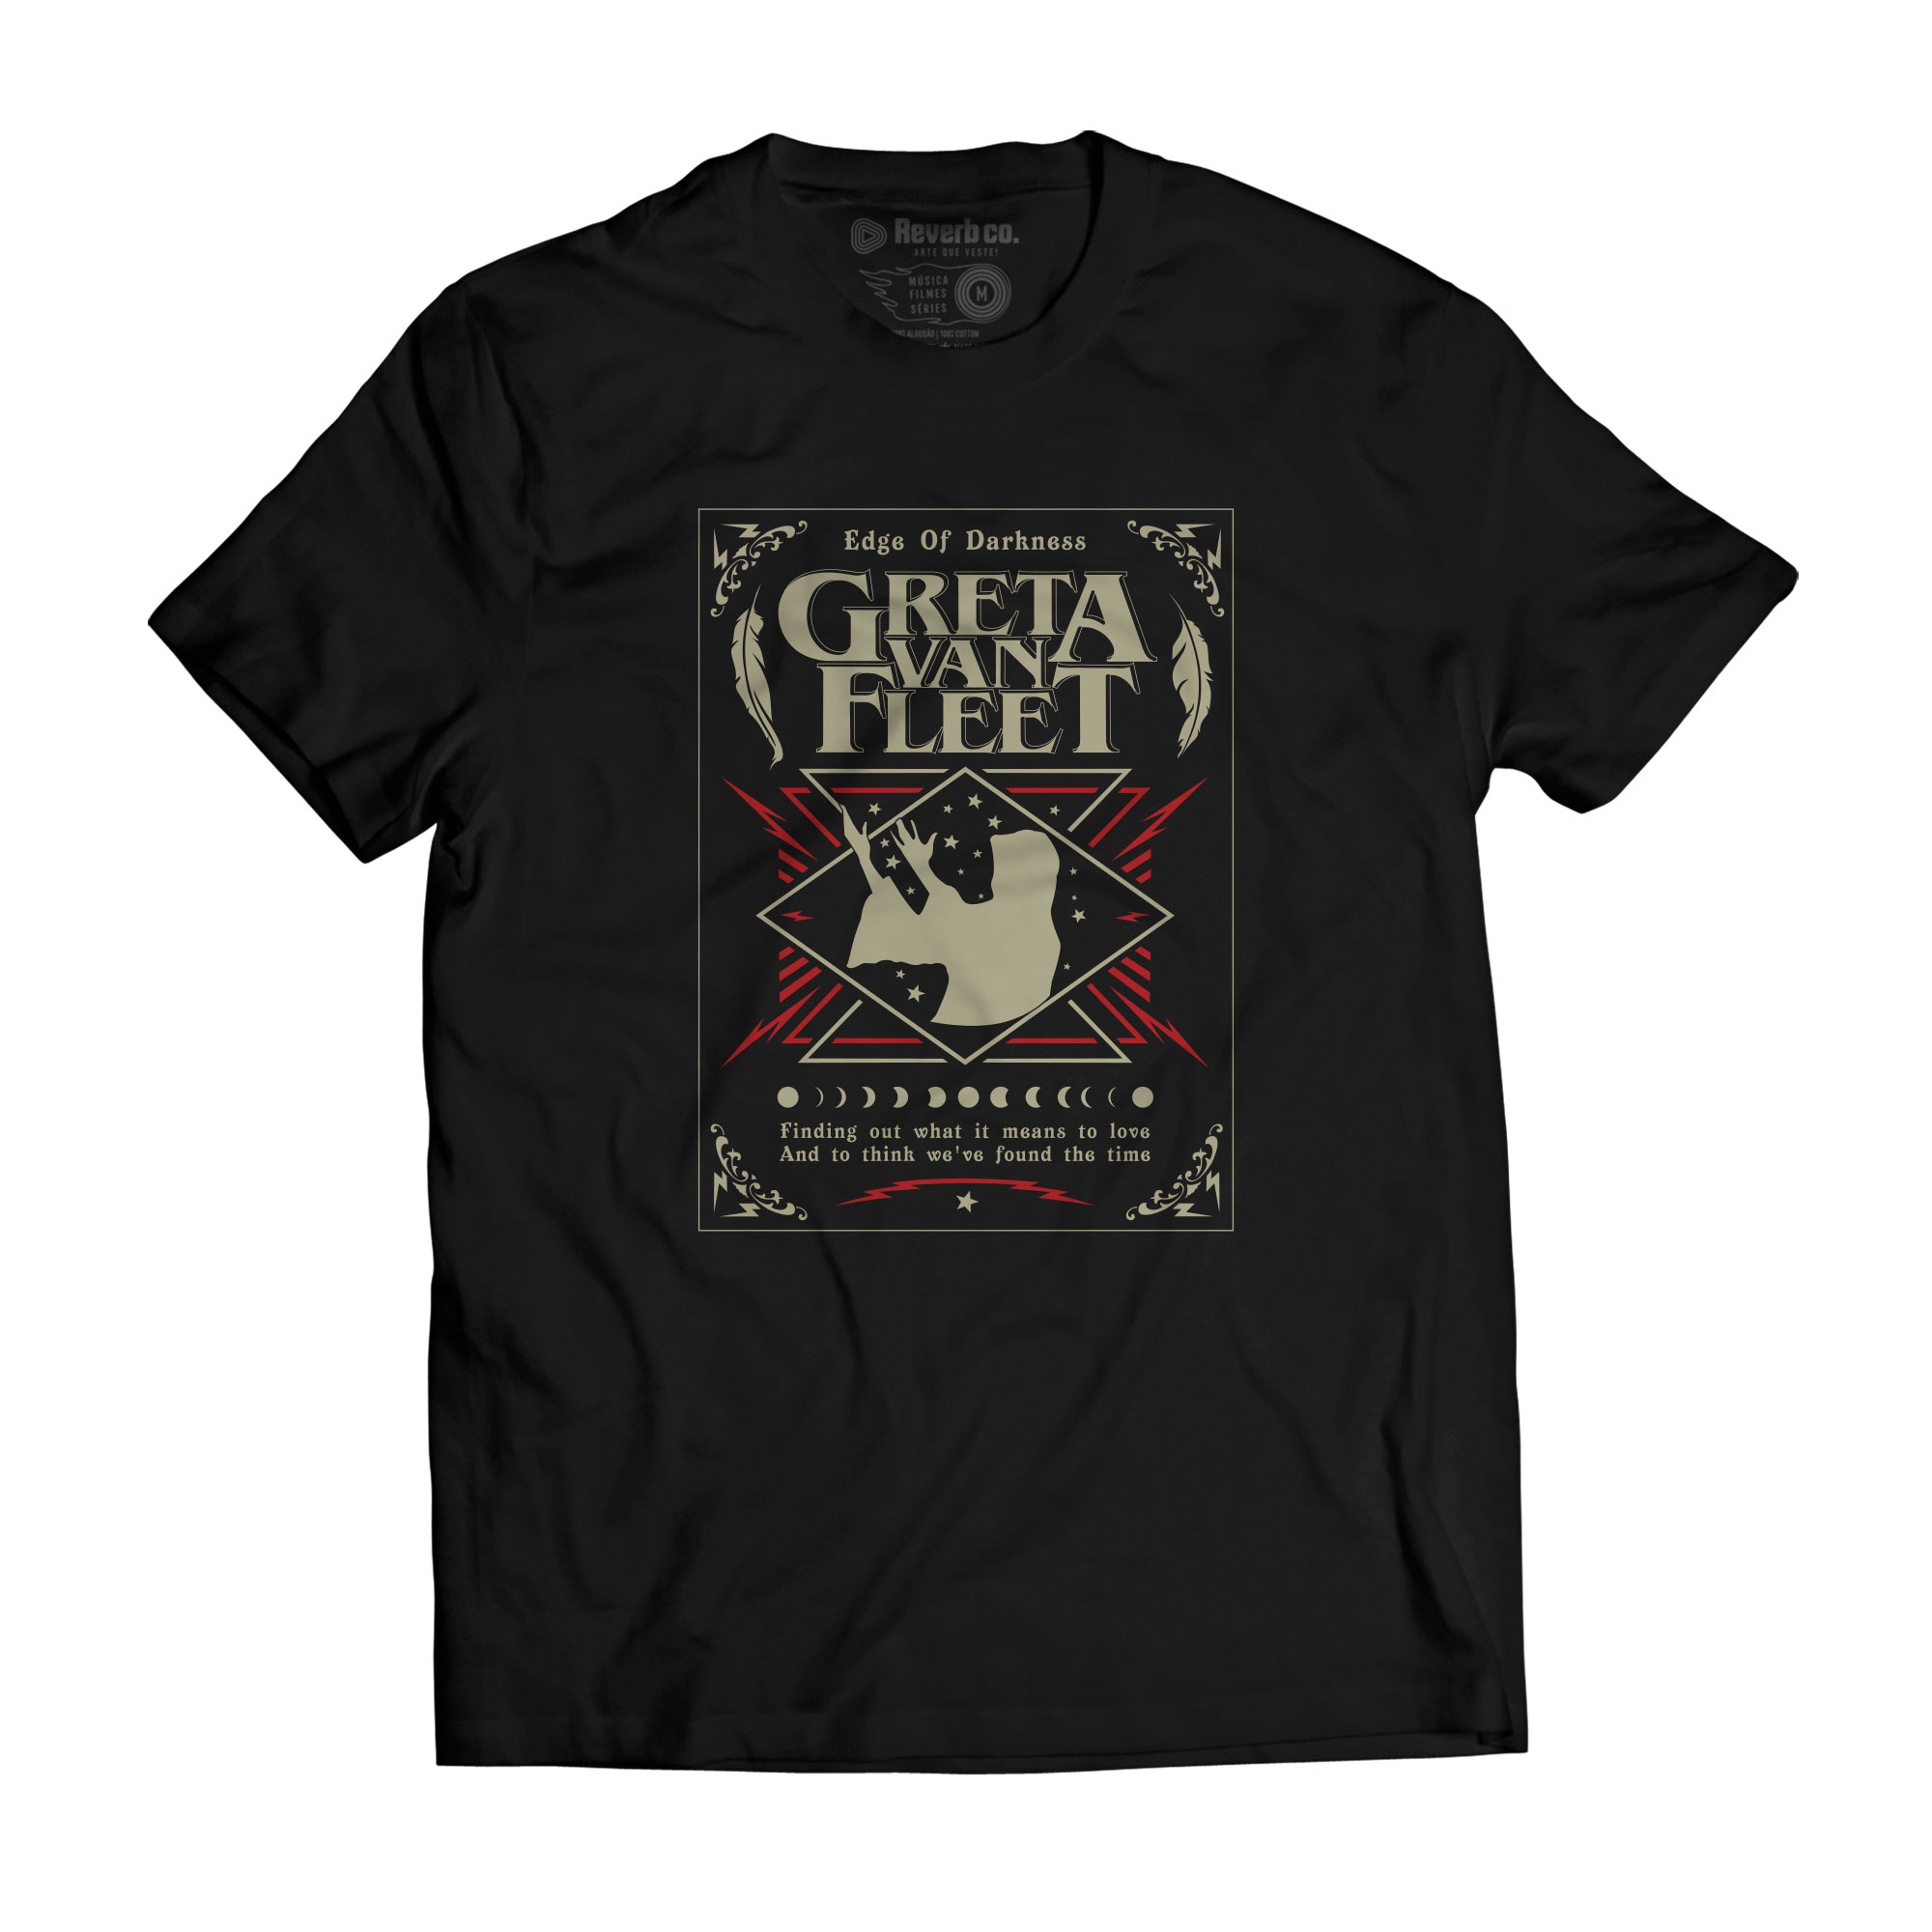 Camiseta Edge of Darkness - Greta Van Fleet - Masculino